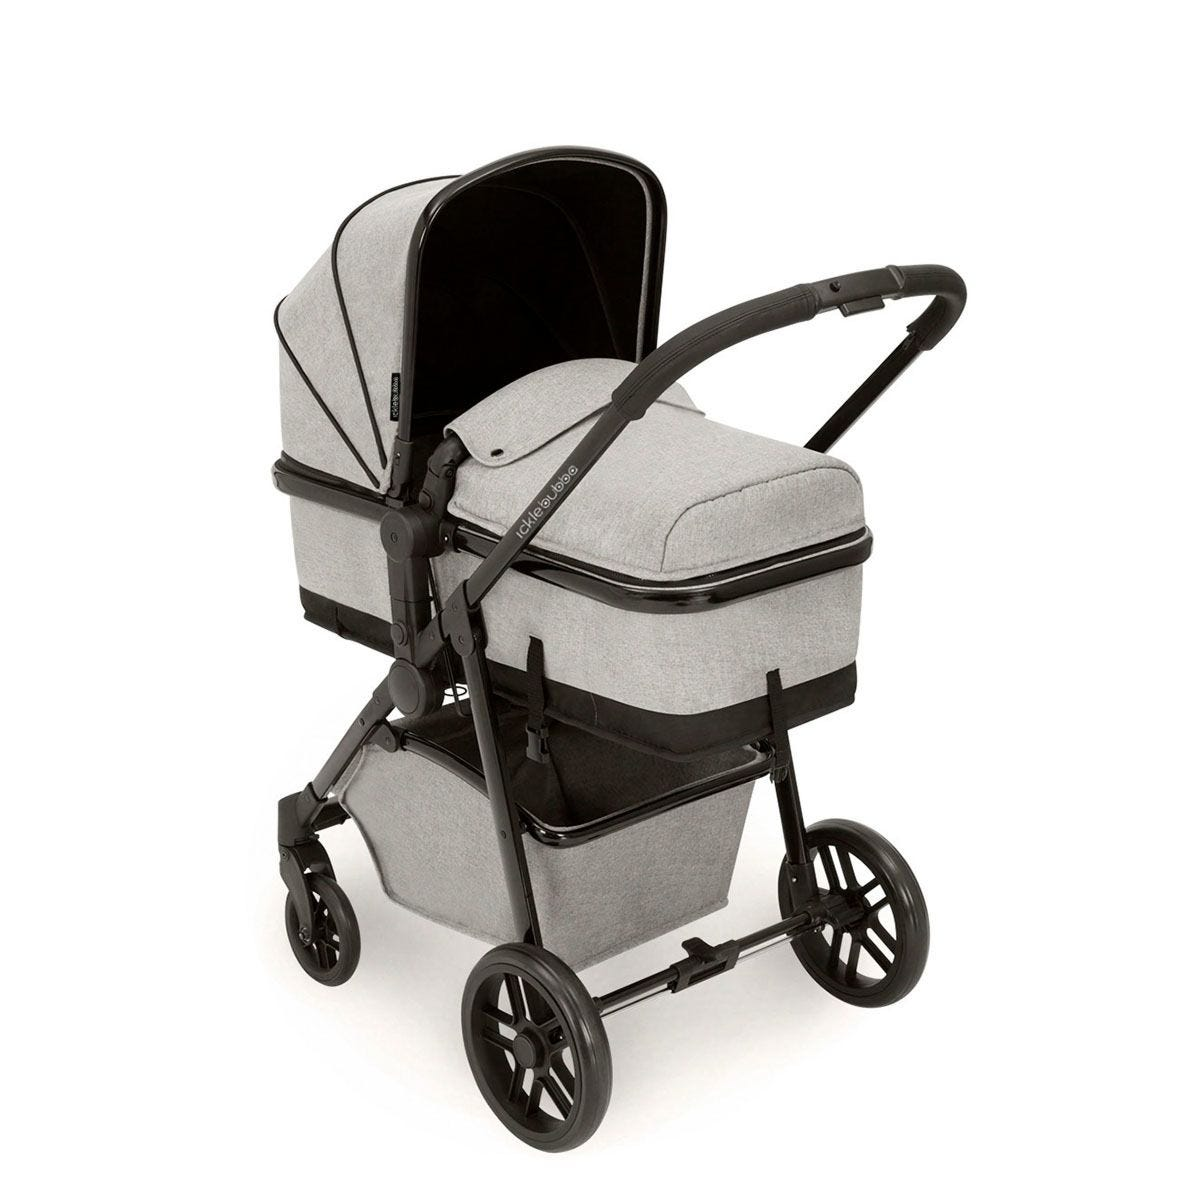 Ickle Bubba Moon 3 in 1 Travel System - Silver Grey on Black with Black Handles